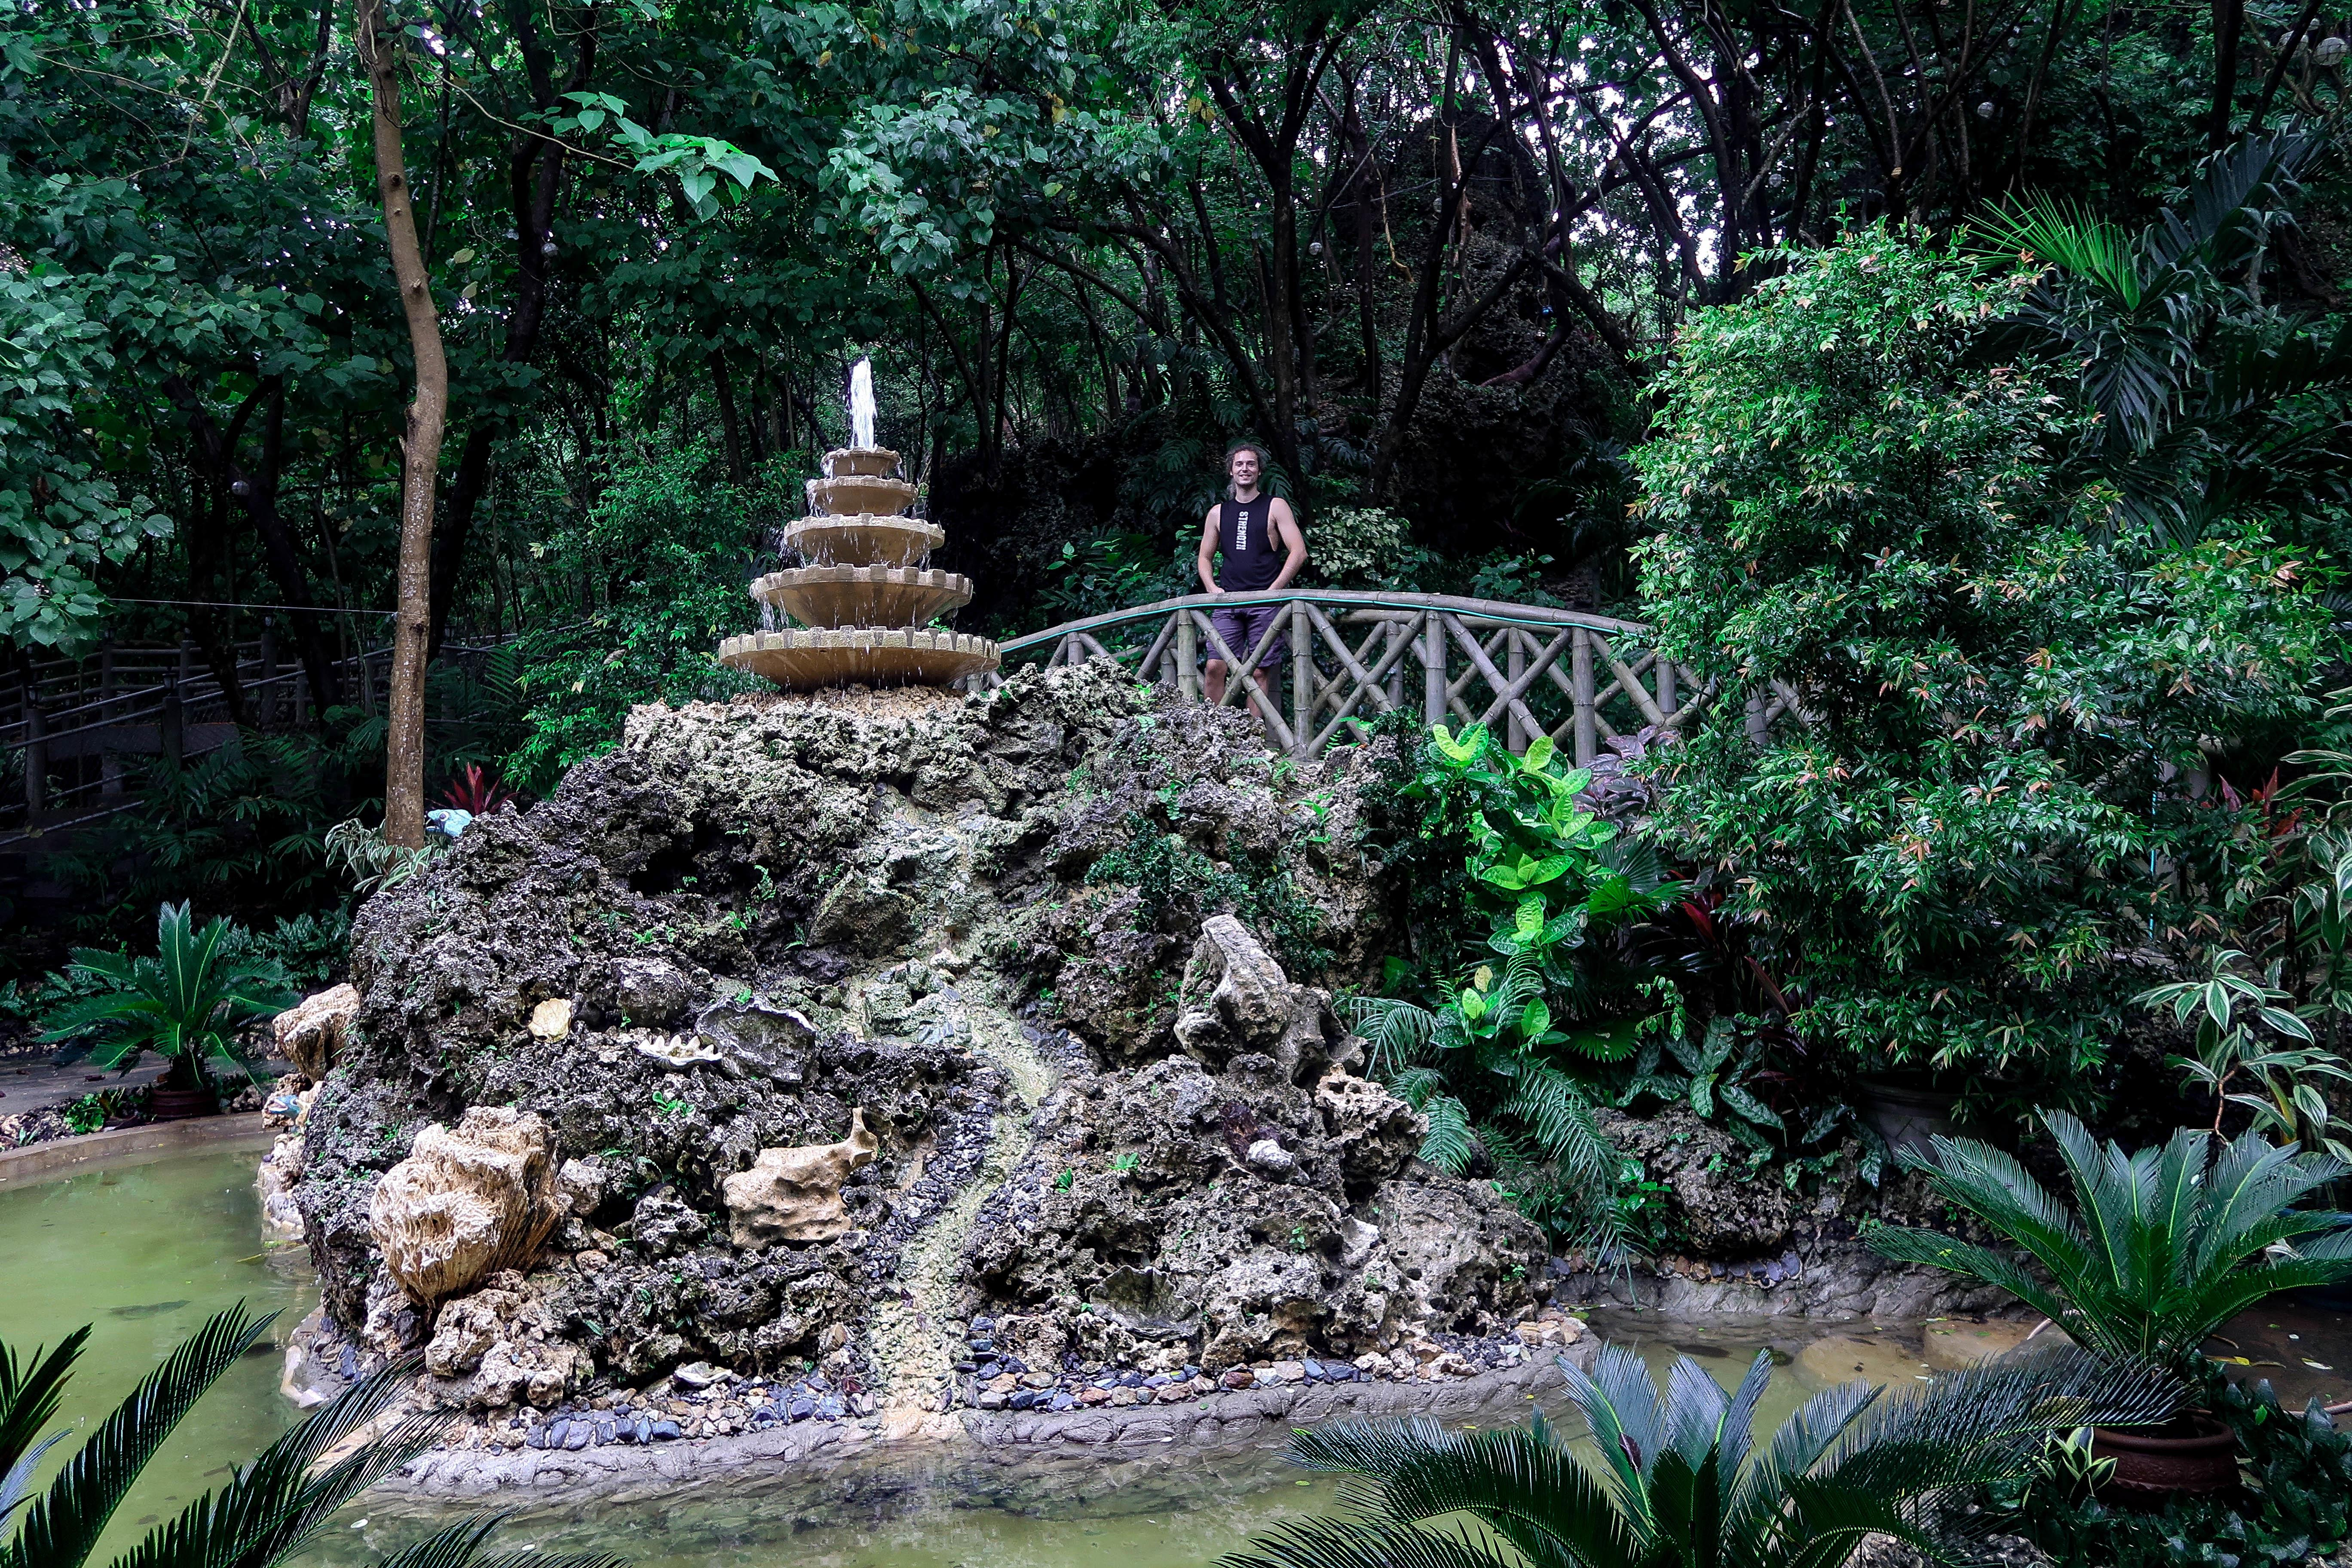 lennythroughparadise on a little bridge in the enchanted cave park in bolinao pangasinan philippines